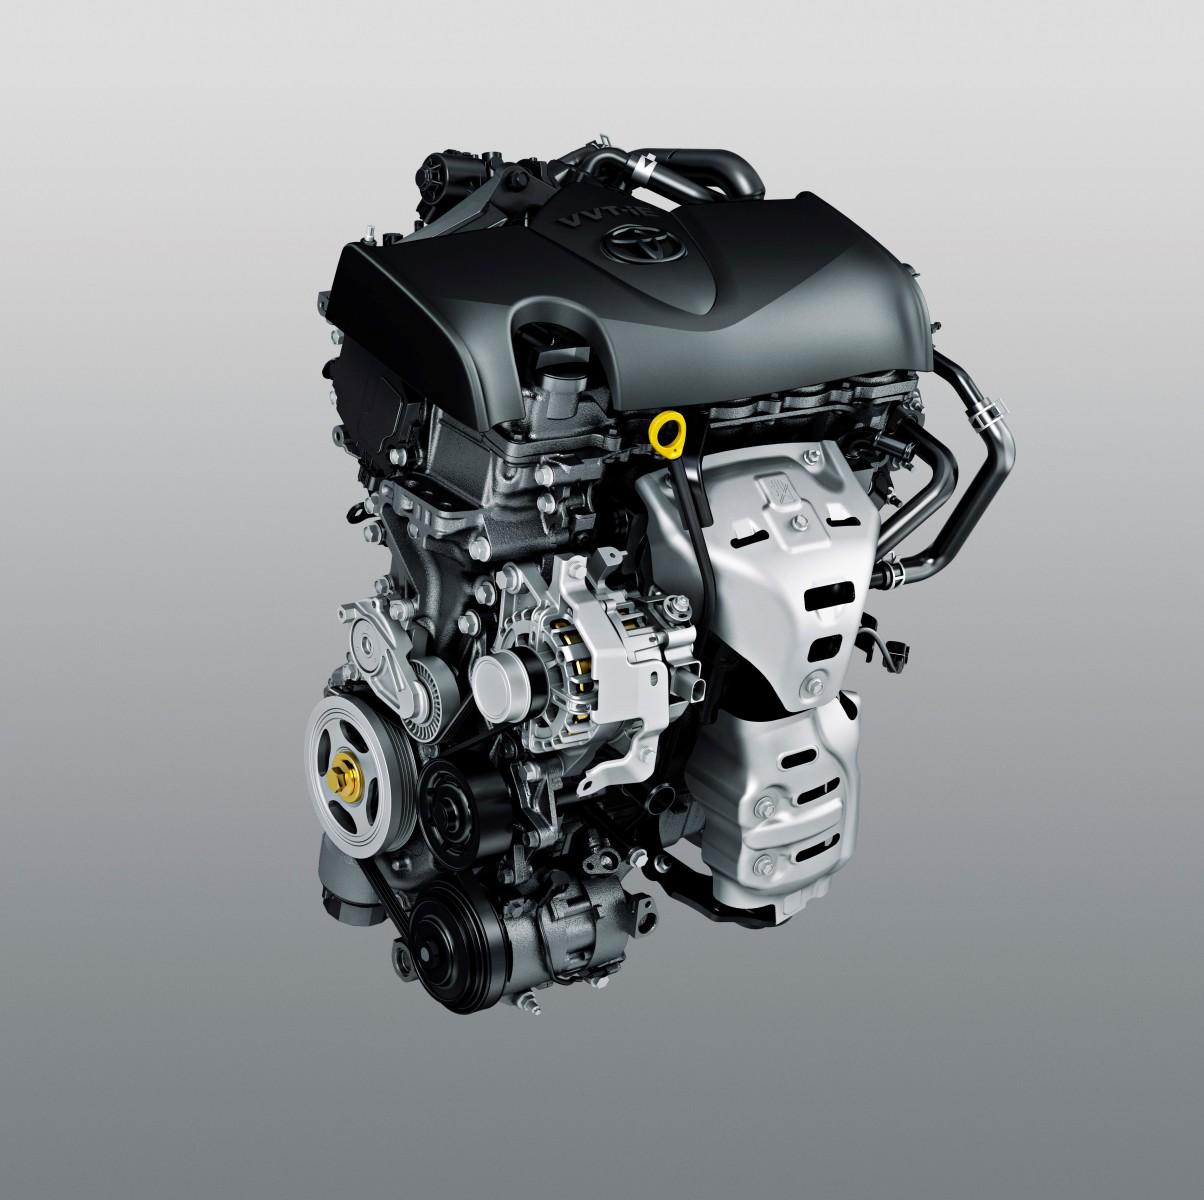 1.5 l Petrol engine